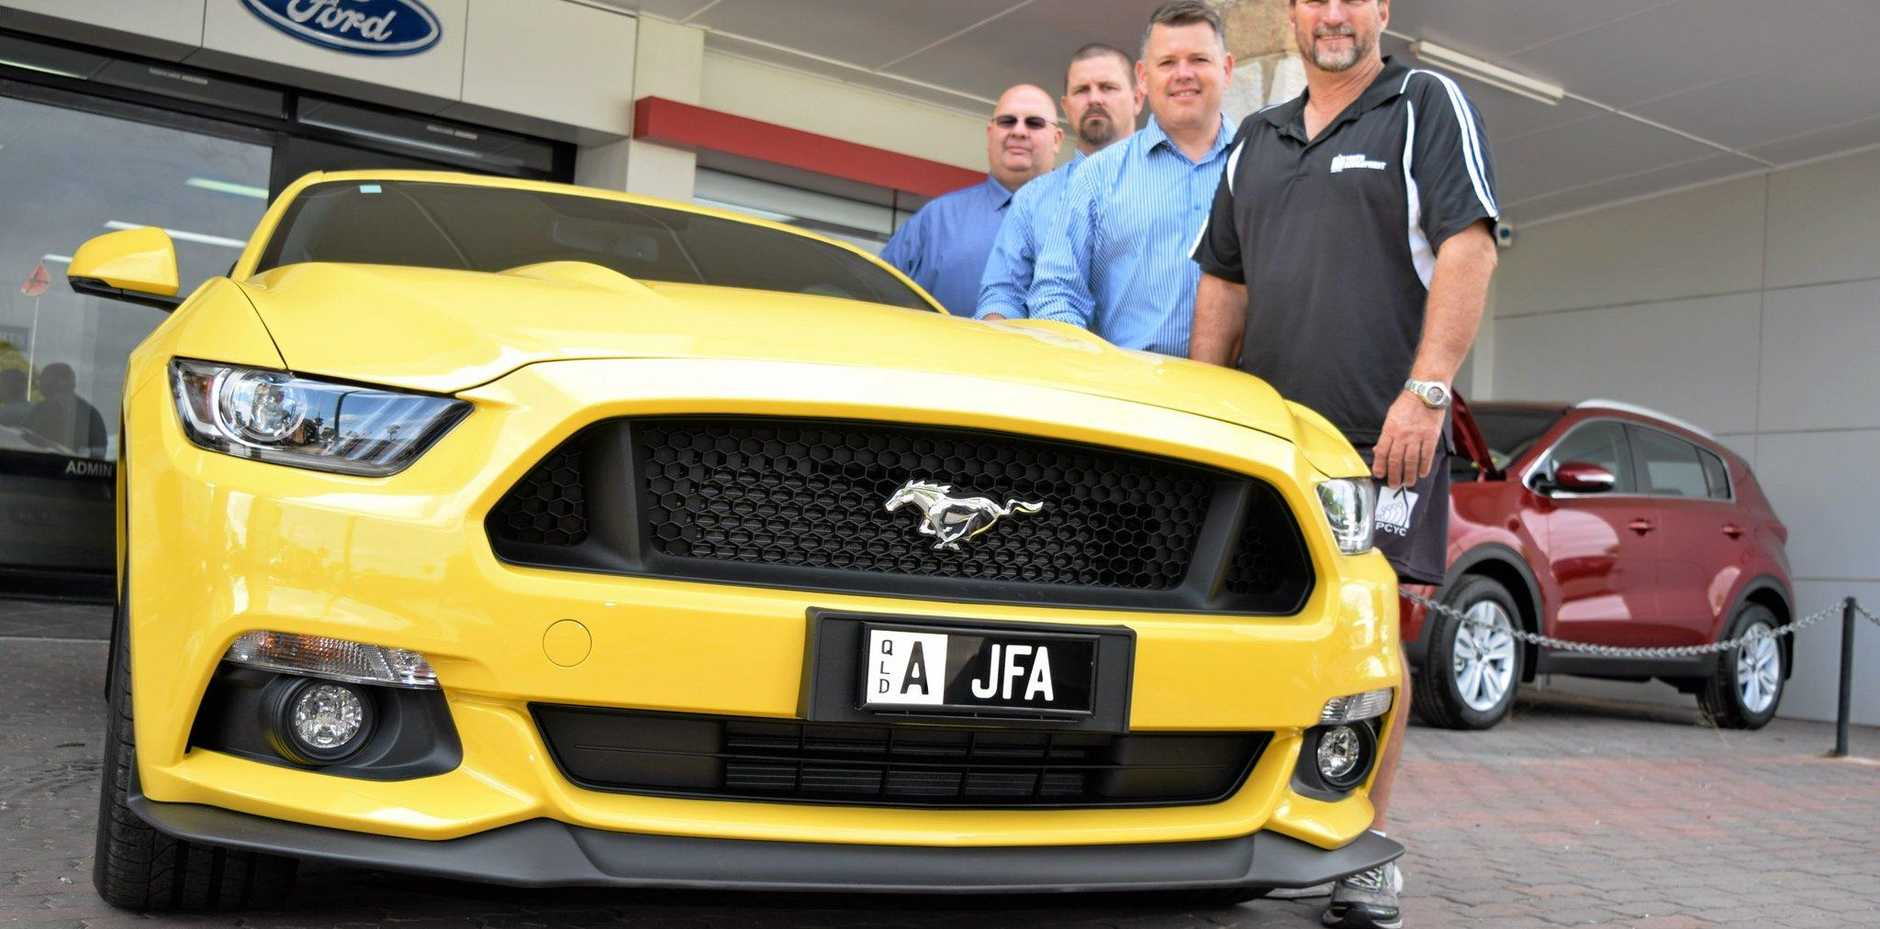 MUSTANG: (From left) Ross Nicholas, Ivan Maunder, John Armstrong and Greg Caletti with the prized Mustang for Easter in the Country.